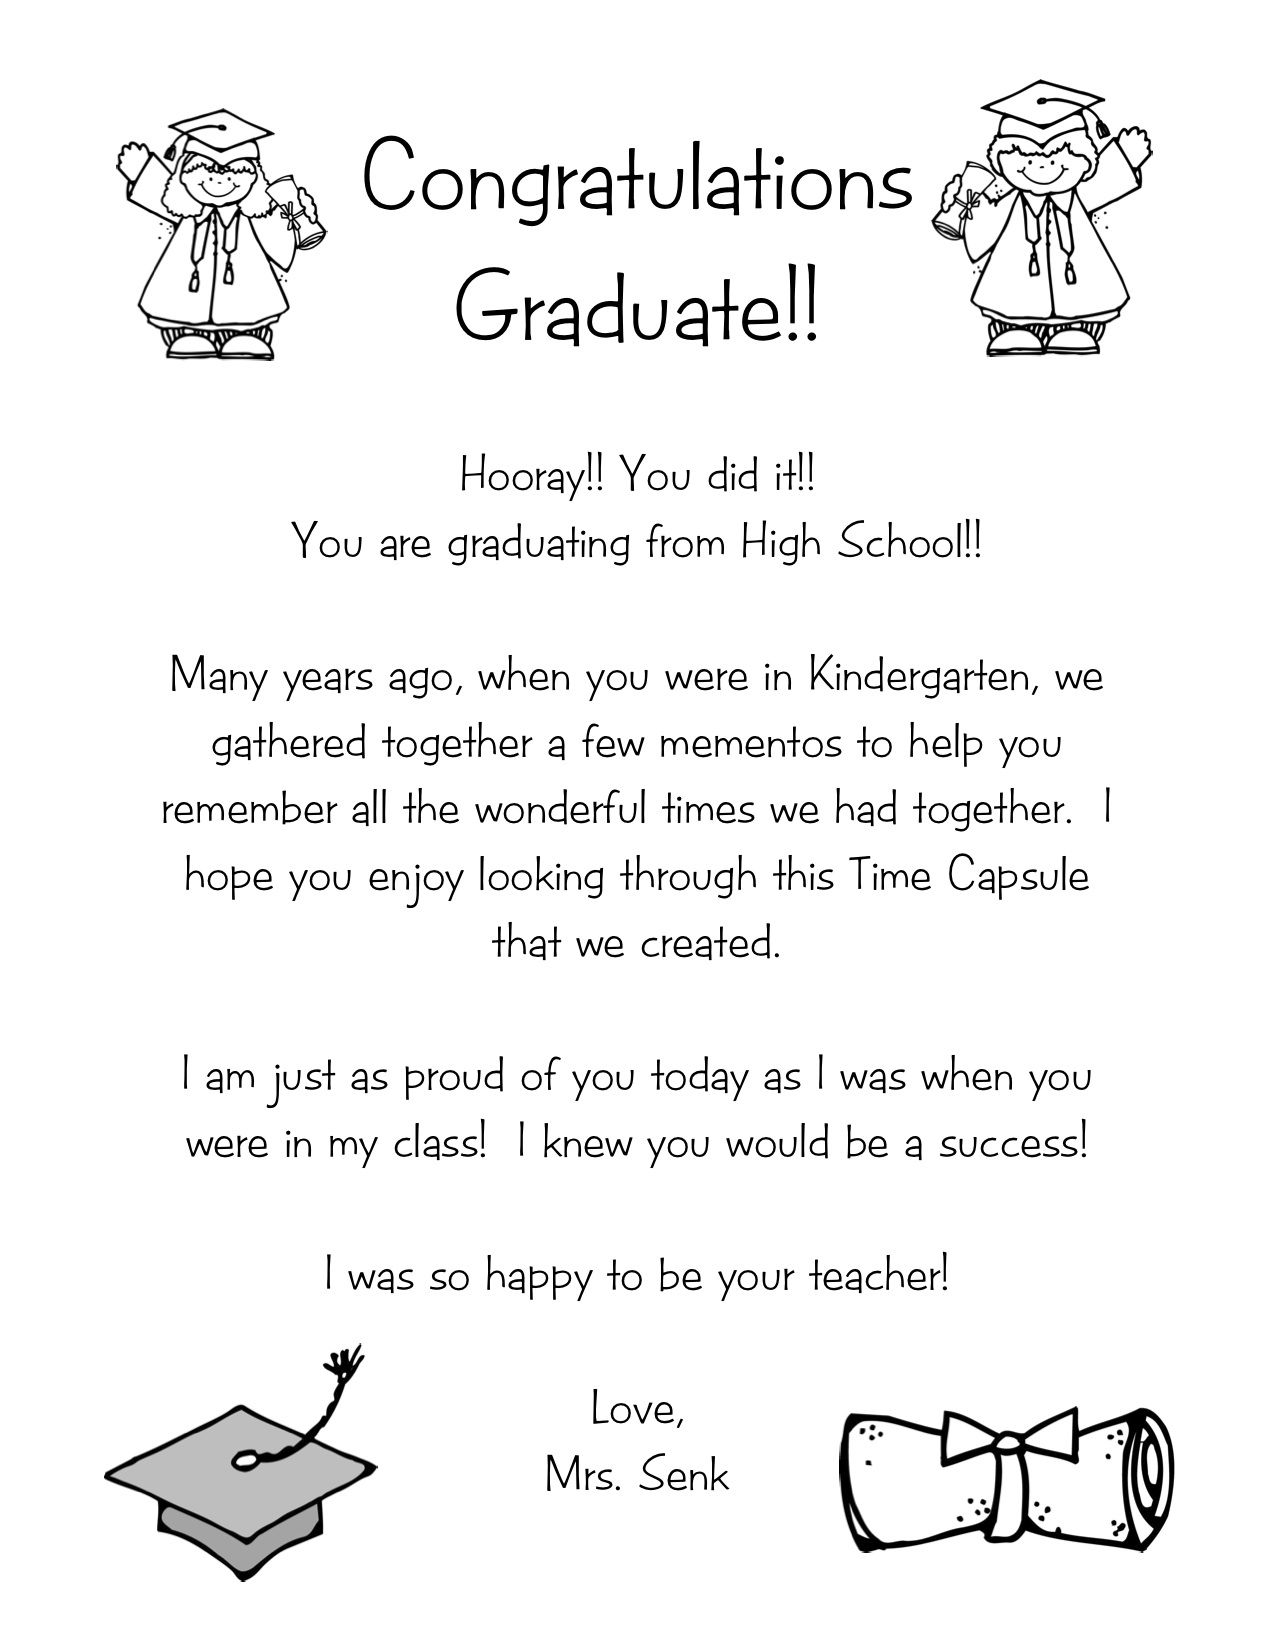 nursery promotion essay Move-up day, promotion day, recognition day, or step-up day are among the   dltk's crafts for kids: graduation ideas for preschool and kindergarten.